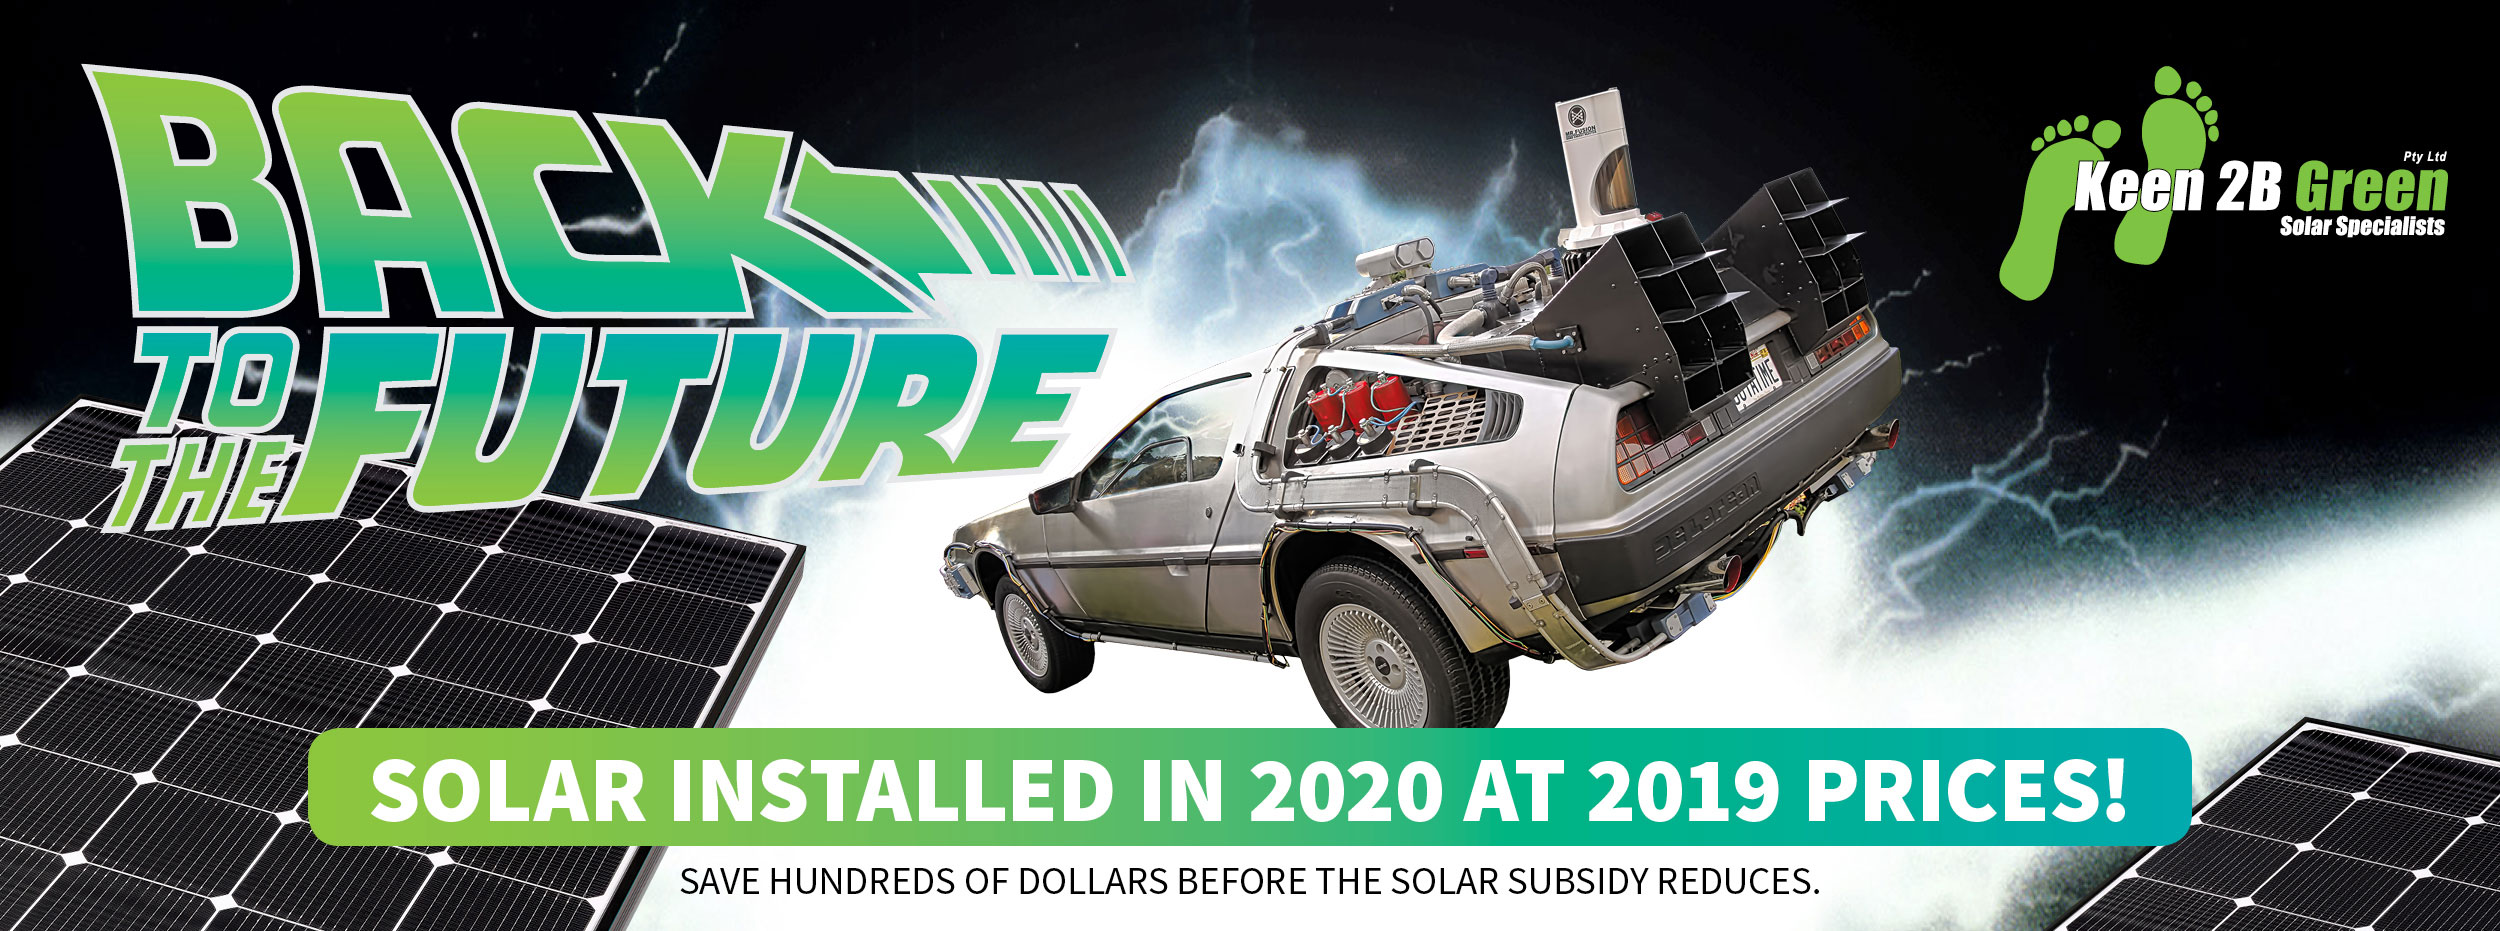 Back to the Future - Solar Installed in 2020 at 2019 Prices